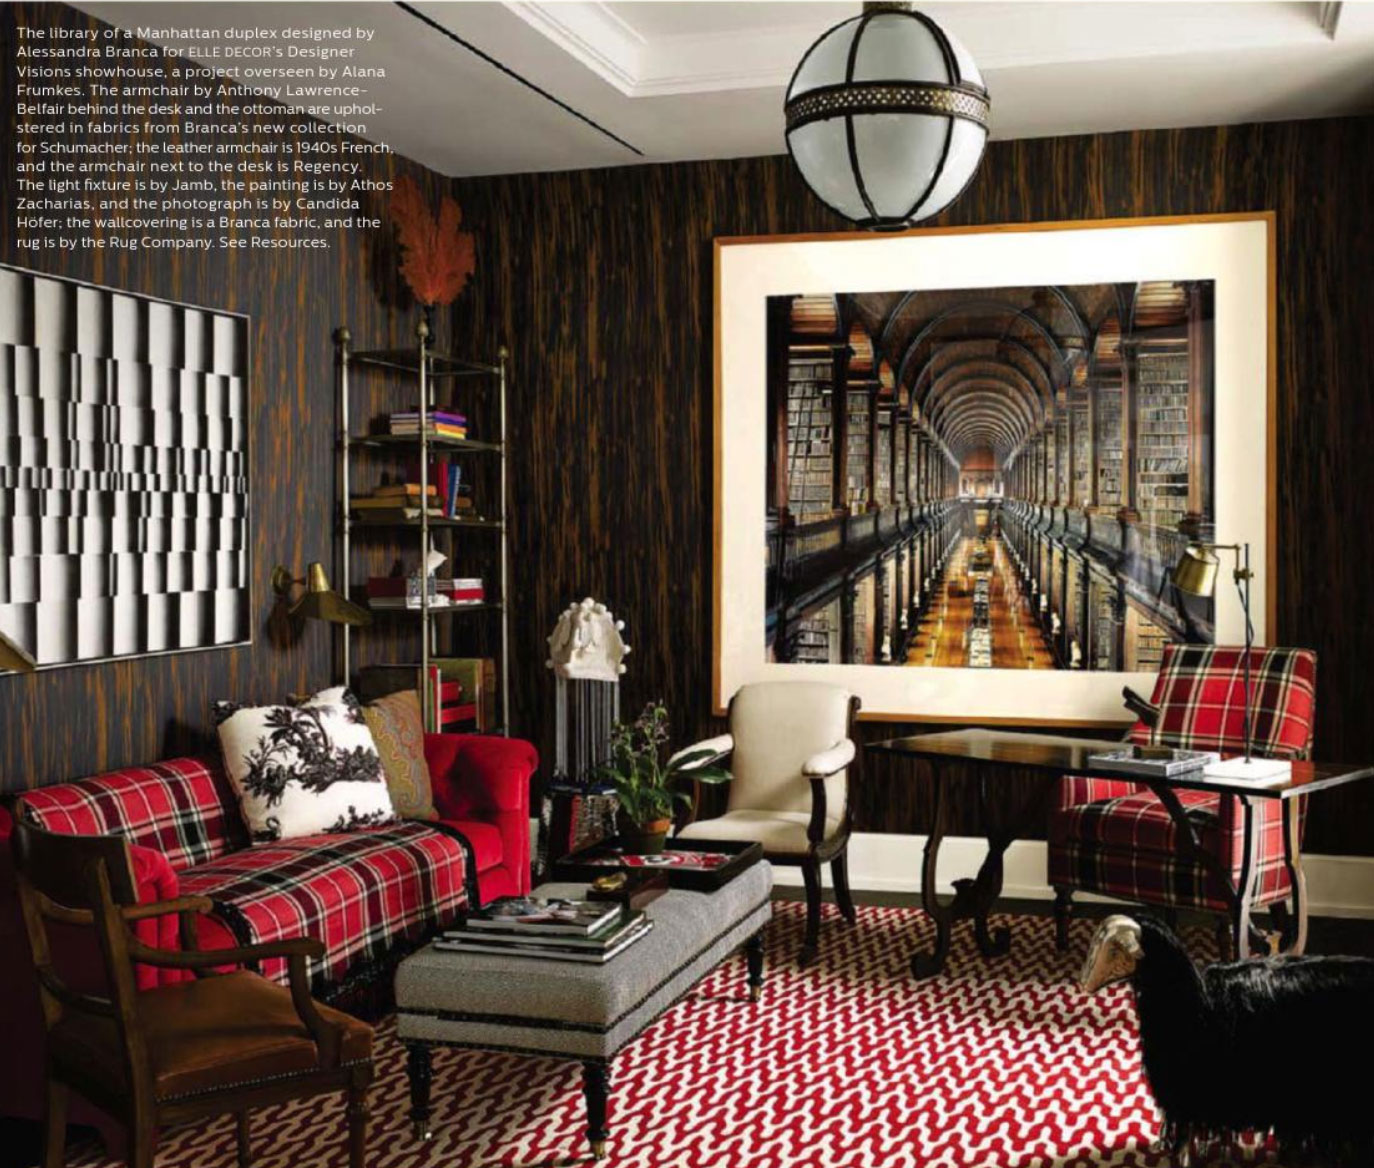 Decoration Design: Elle Decor December 2013